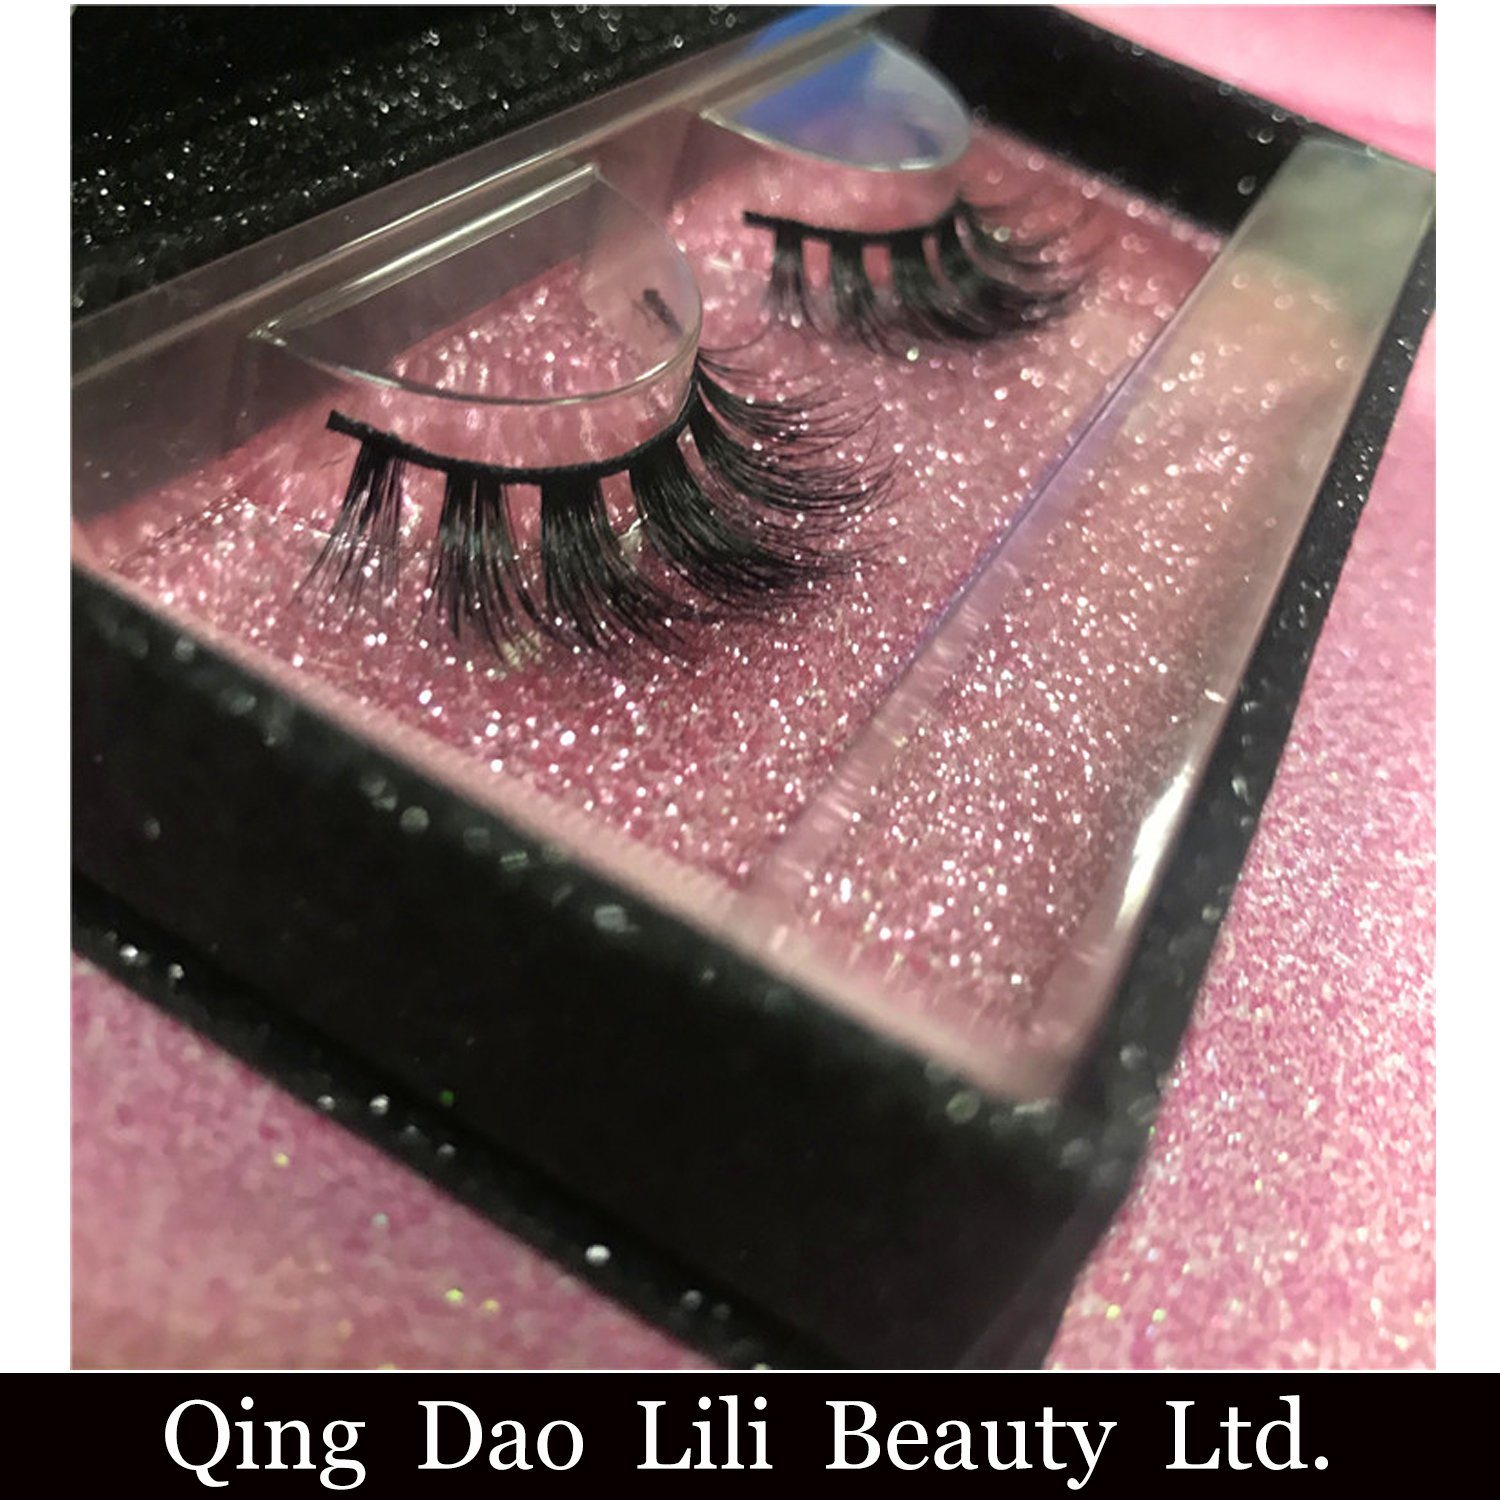 26c5a90a805 China 100% Vegan 3D Looking Synthetic Faux Mink Strip Lash for Makeup  Artist - China Eyelashes, Mink Eyelashes